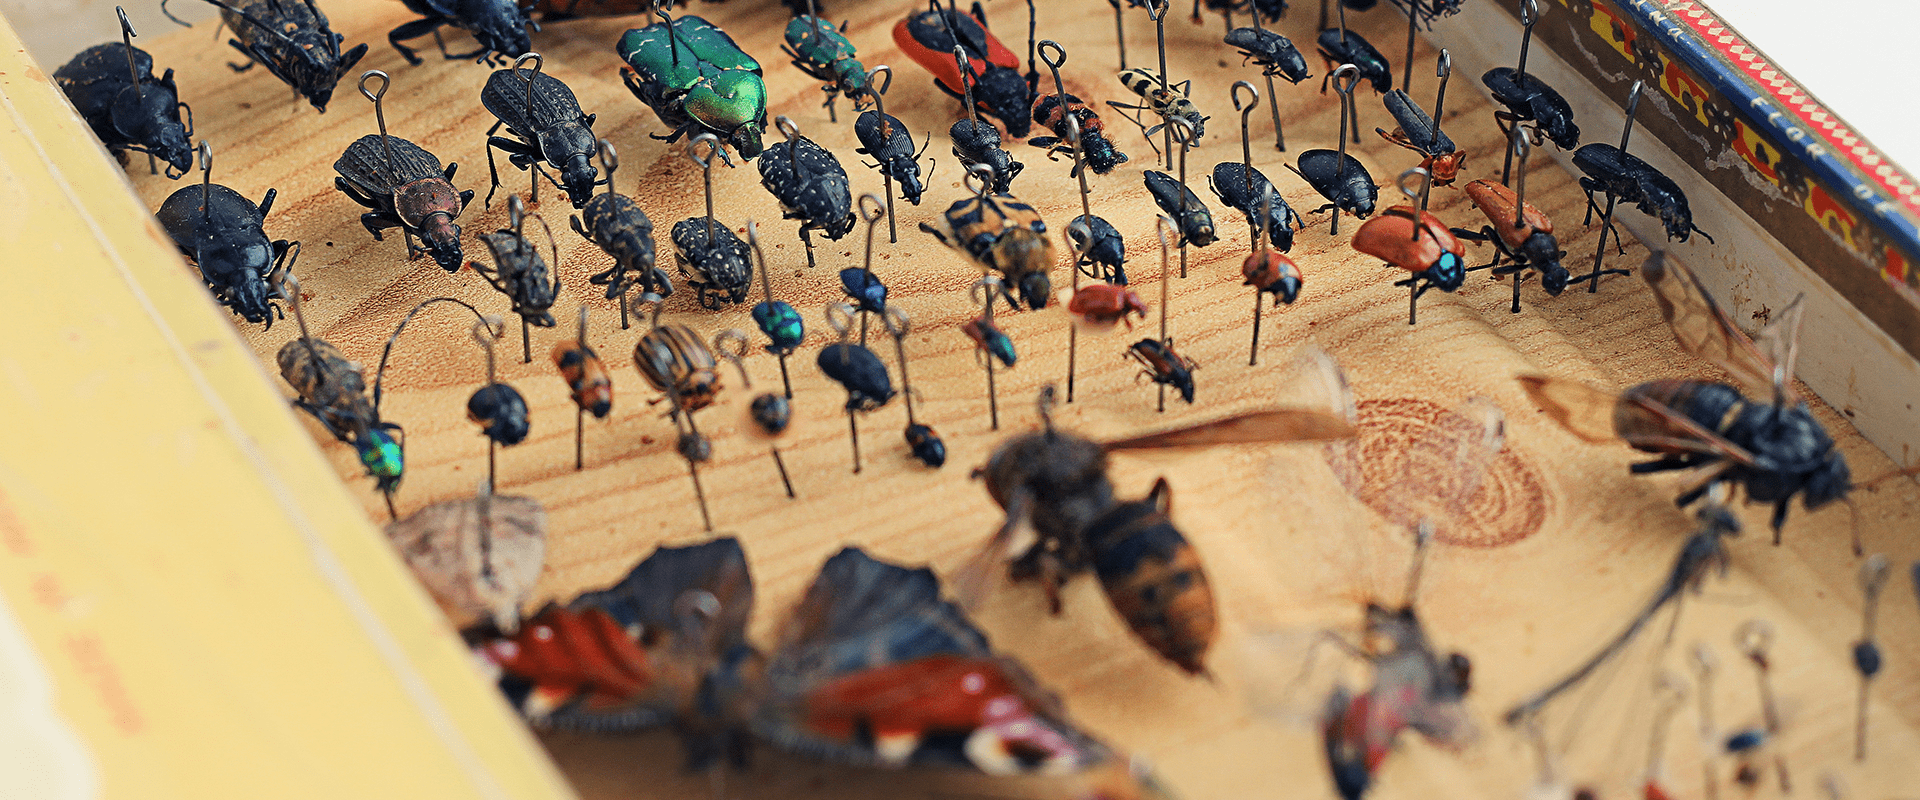 entomology collection of insect iq with insects in display case on pins